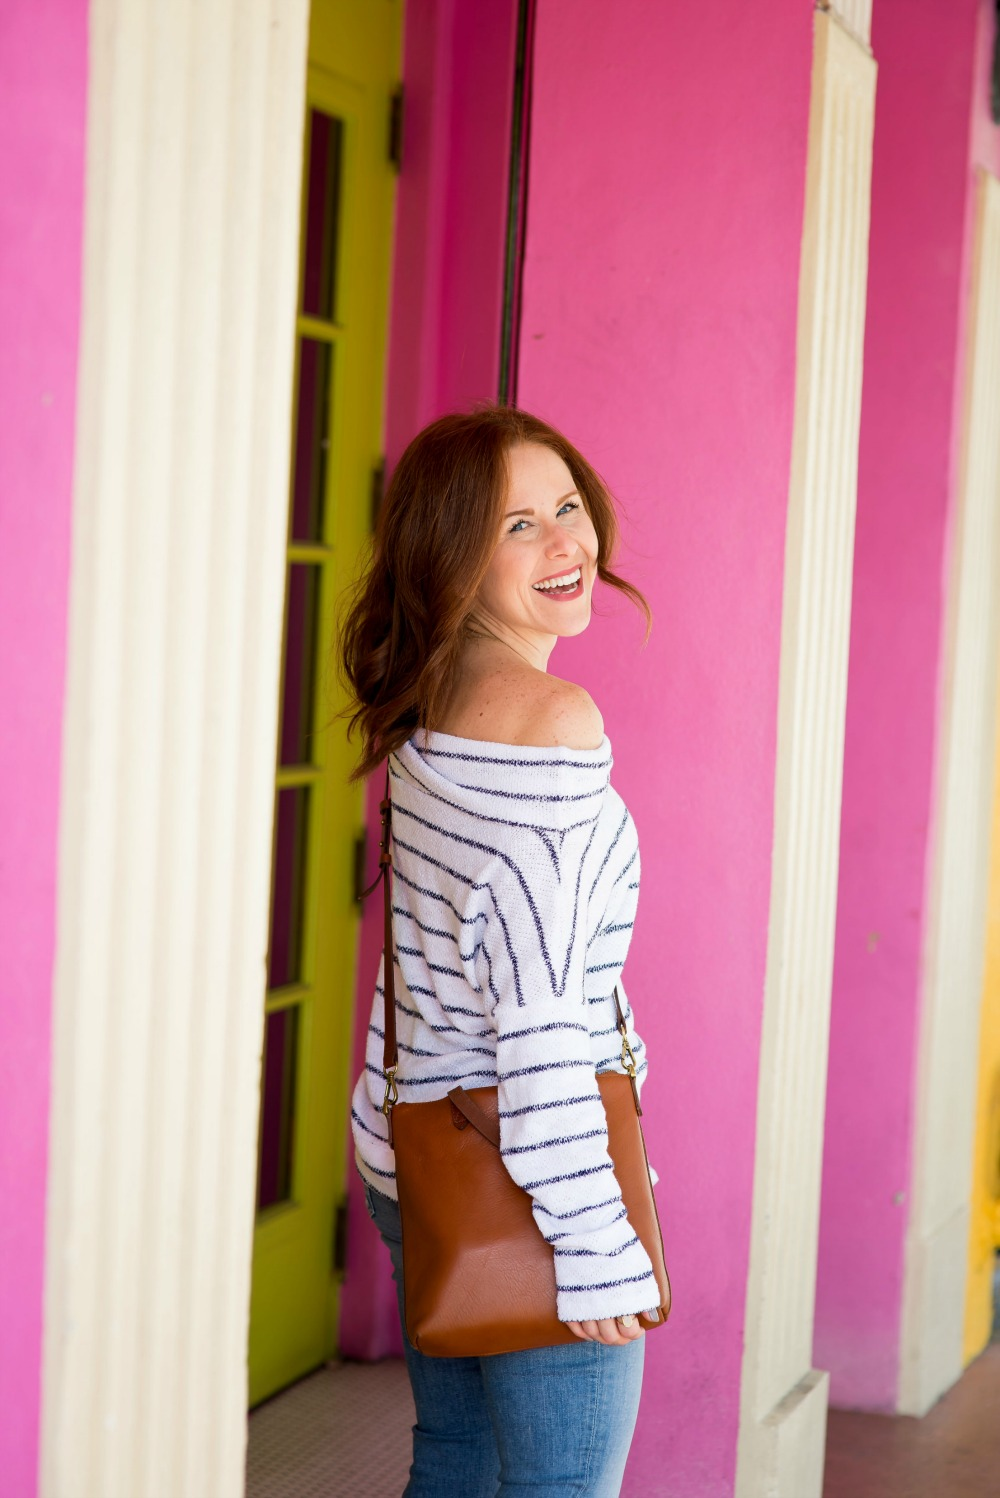 Striped off-the-shoulder sweater  - the most versatile striped top by popular Florida fashion blogger The Modern Savvy